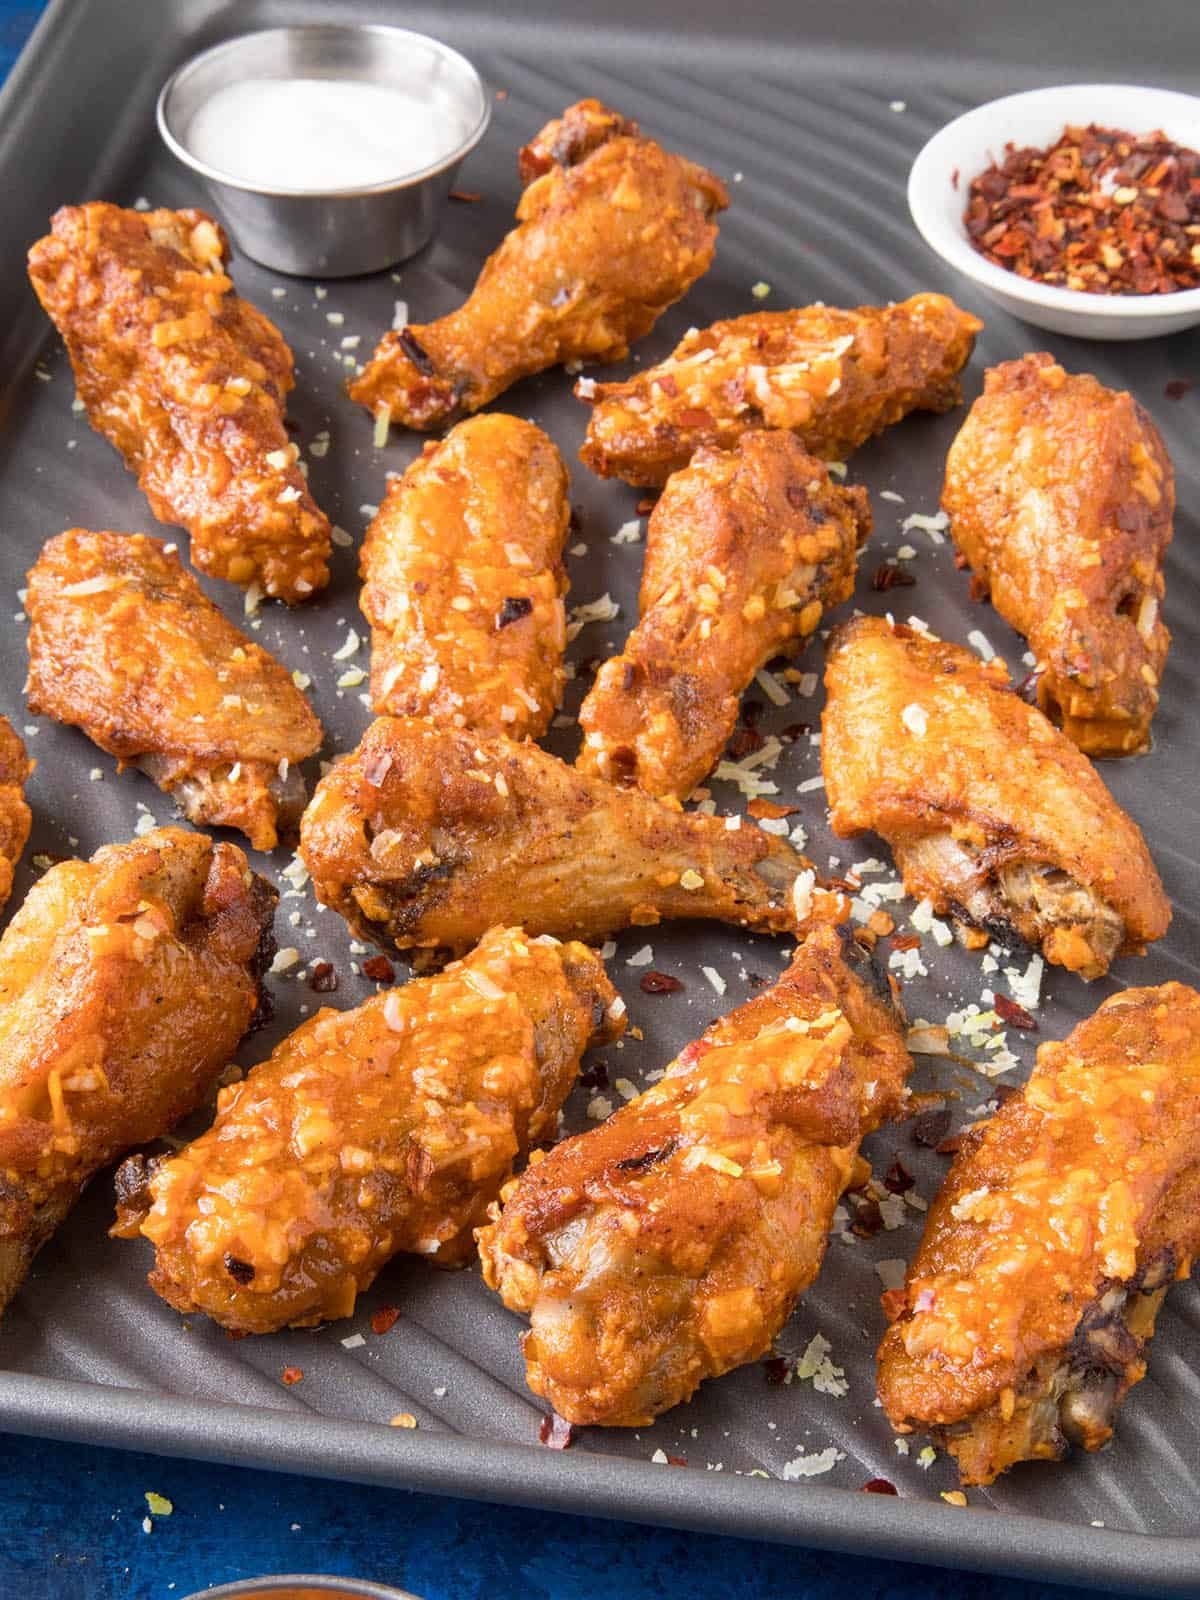 The Ultimate Garlic-Parmesan Wings! The Story!